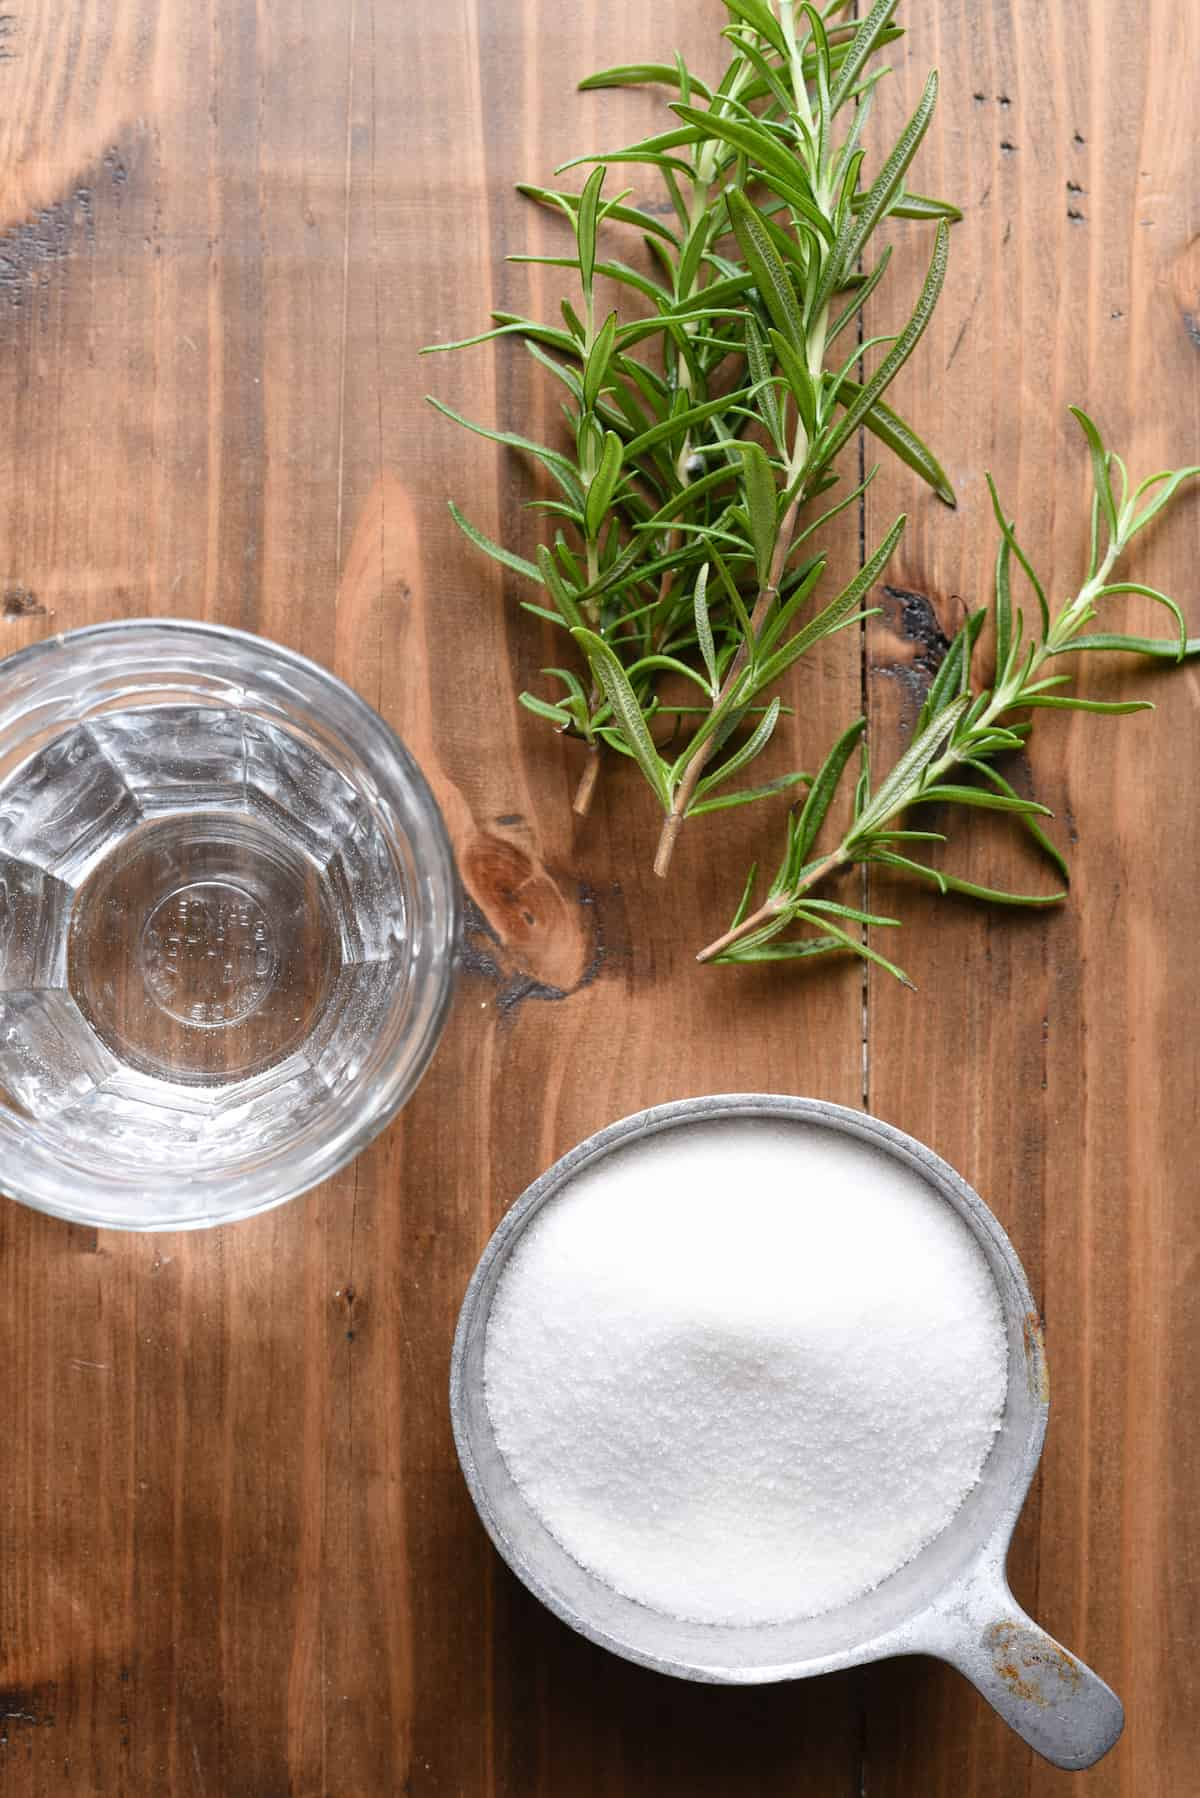 Overhead photo of cup of sugar, glass of water and rosemary sprigs on wooden table.